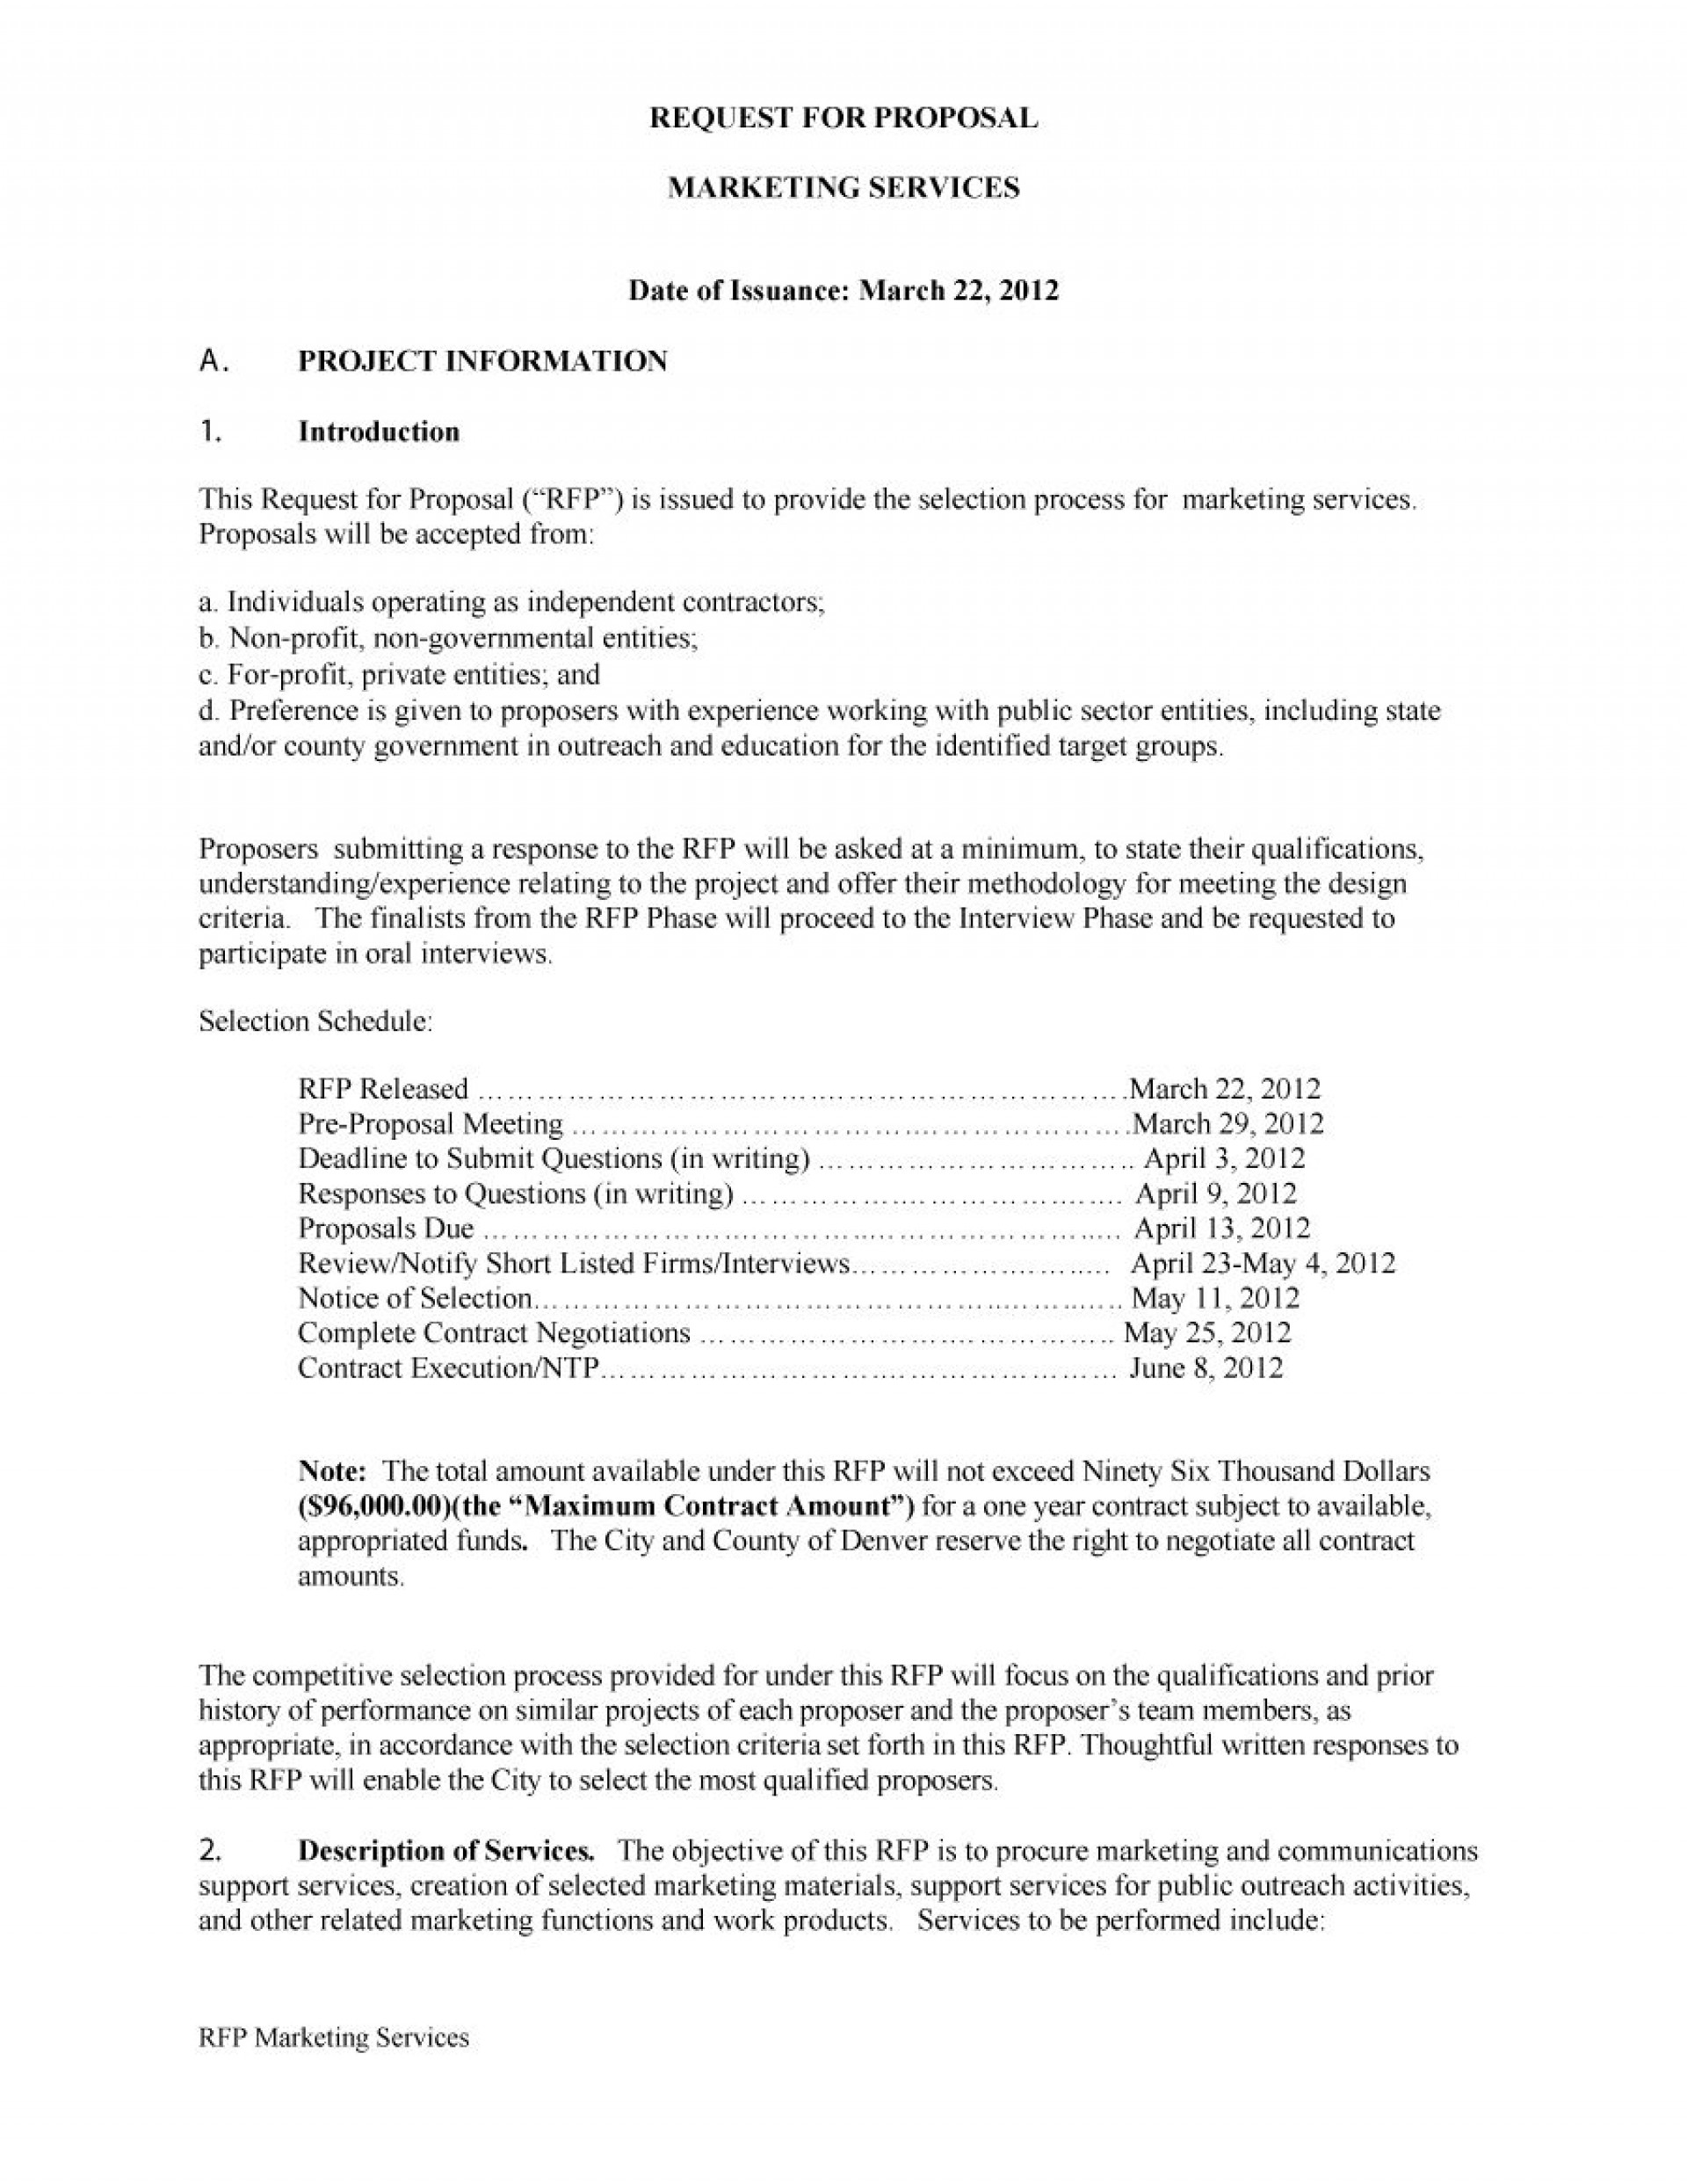 006 Formidable Request For Proposal Rfp Template Construction Sample 1920